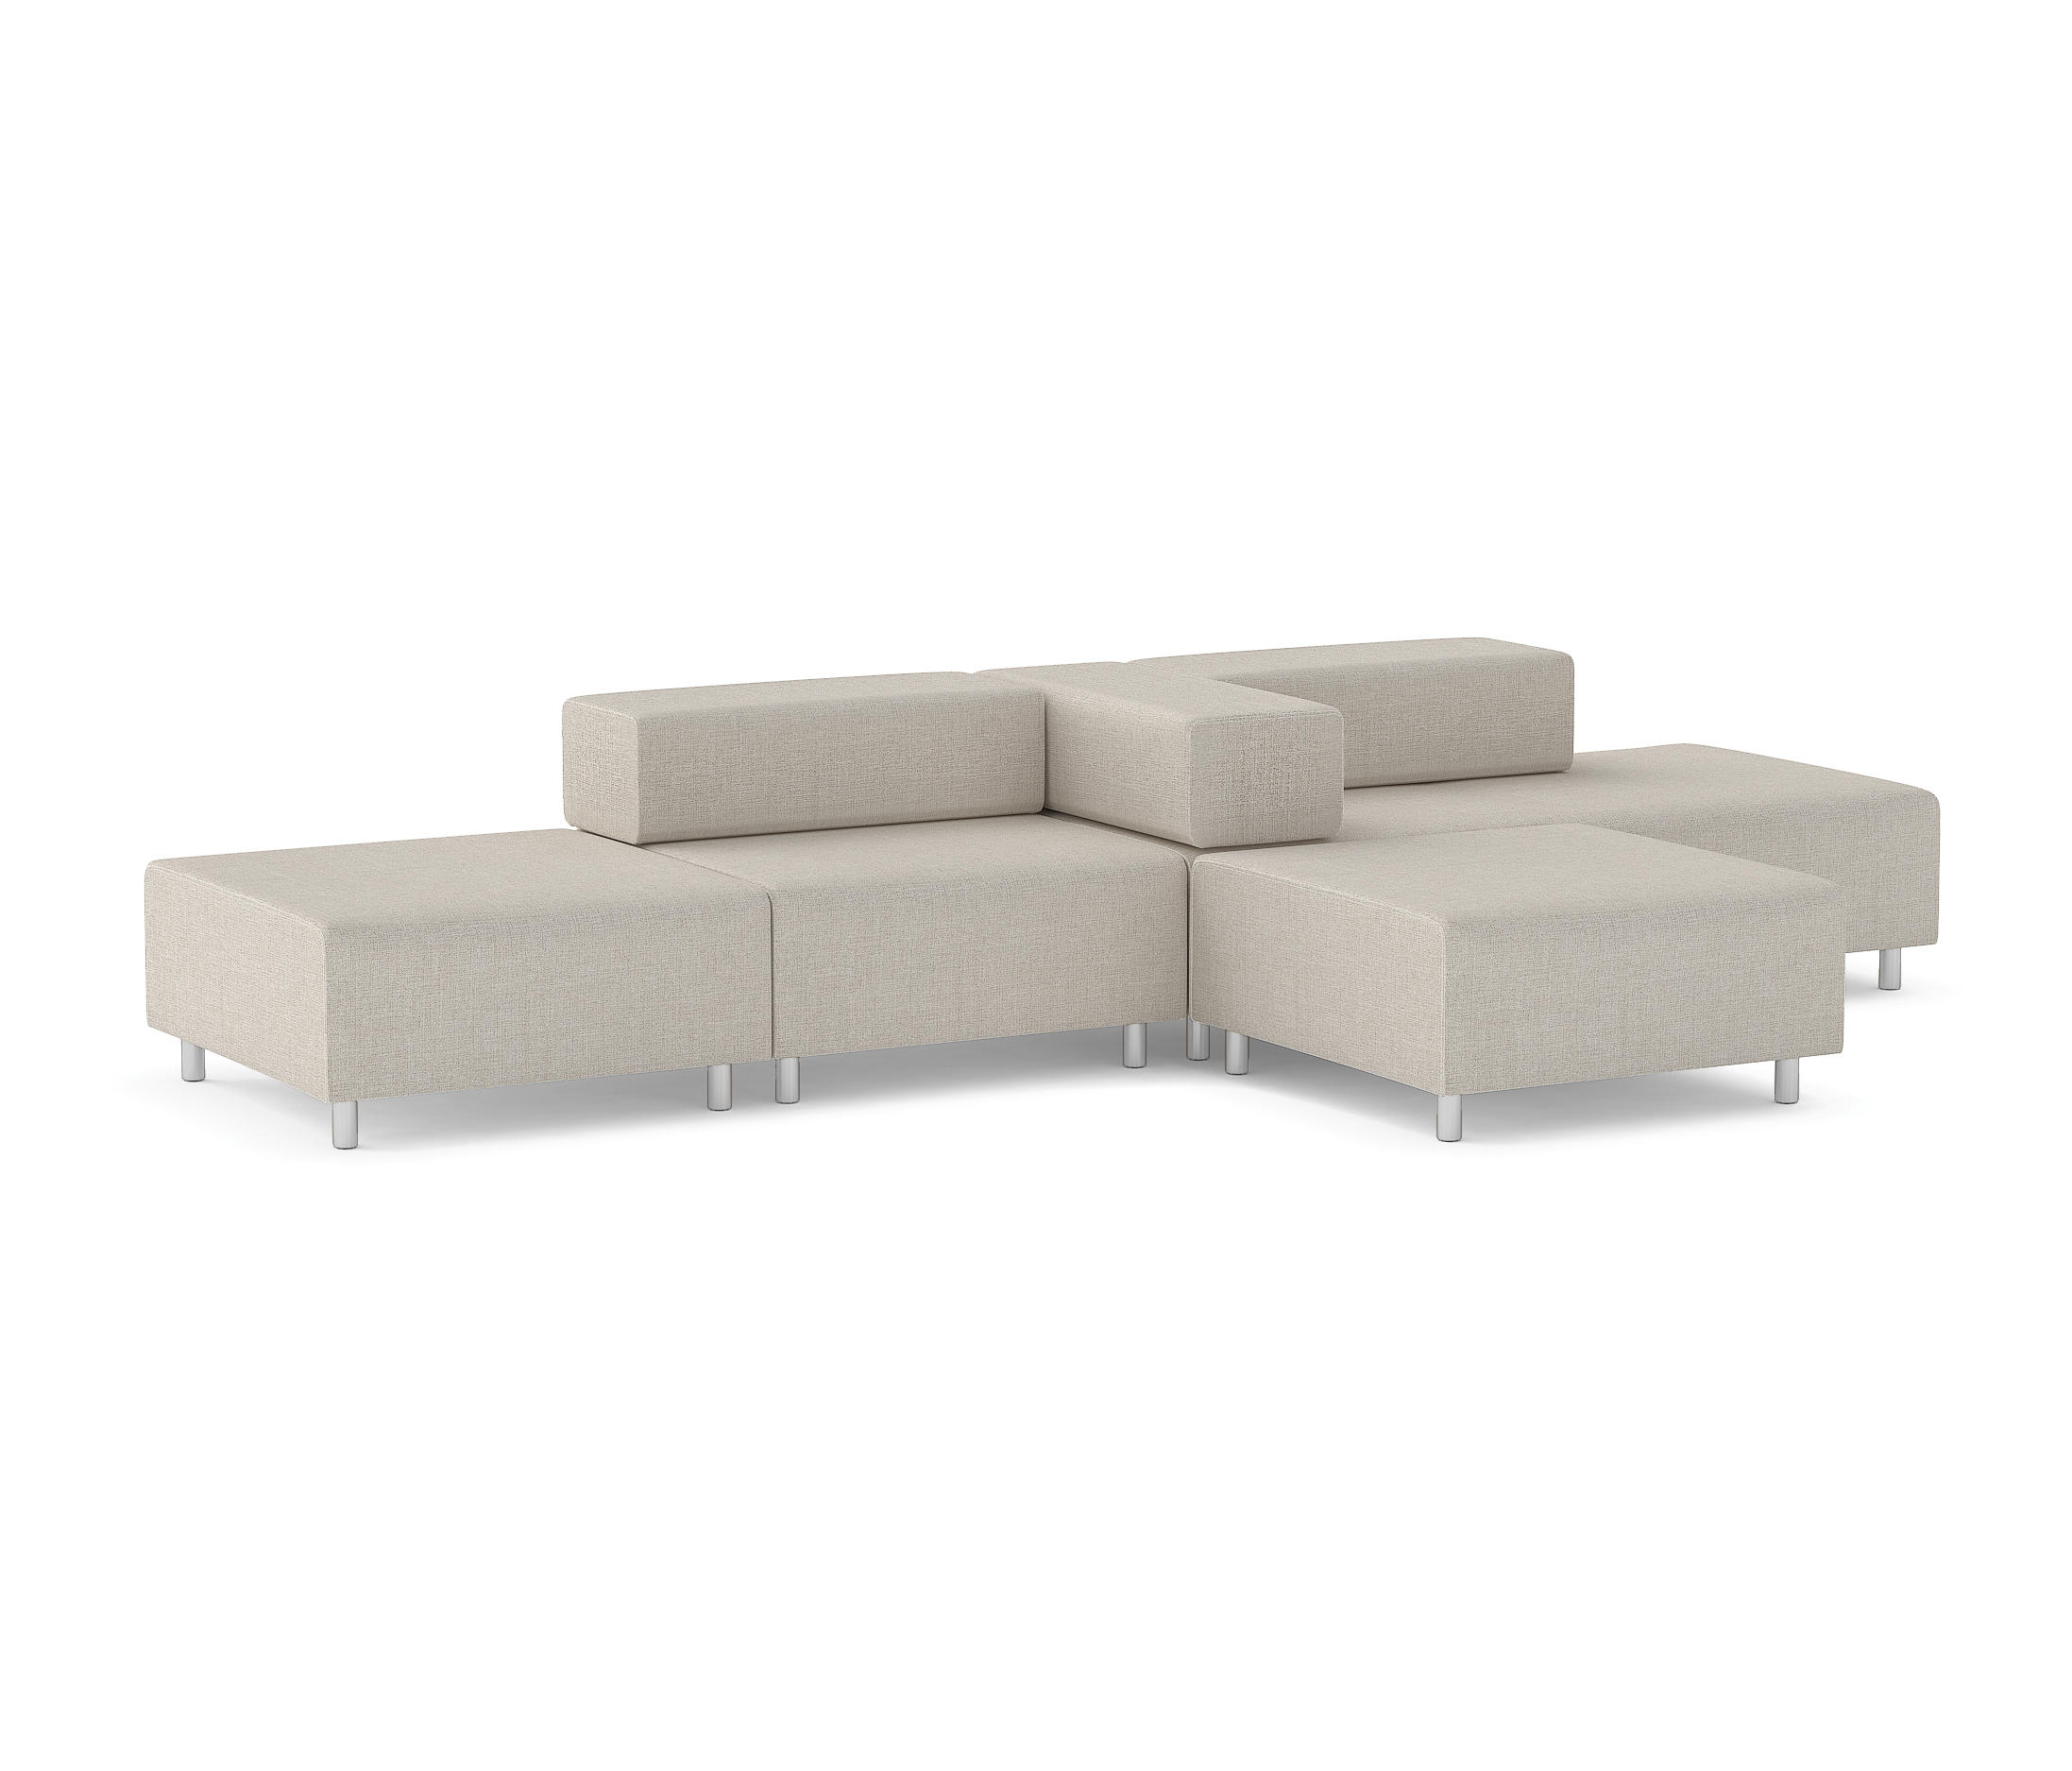 furniture configuration. Fair \u0026 Square Configuration #1 By Trinity Furniture | Modular Seating Systems